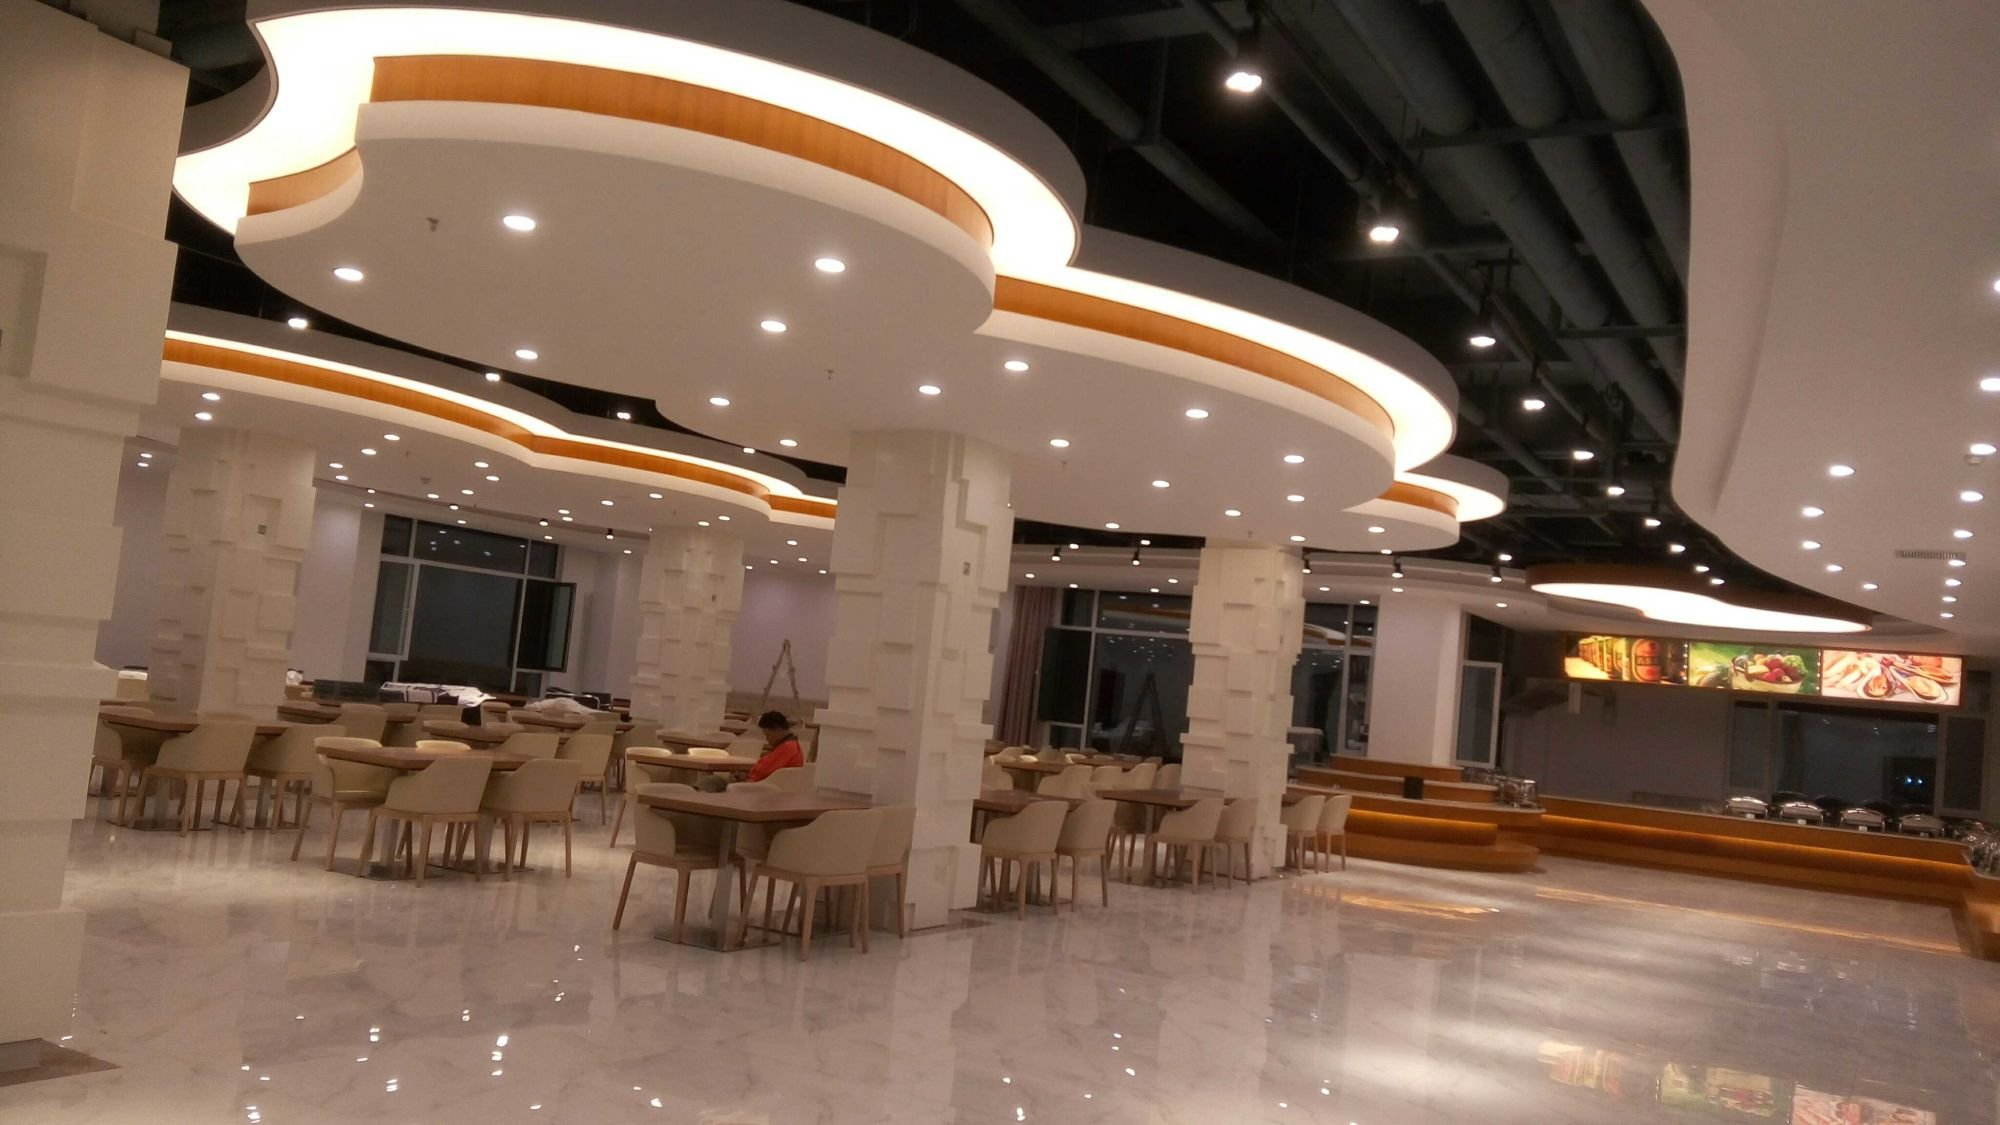 The Excellent performance of uv print pvc stretch ceiling film Foxygen